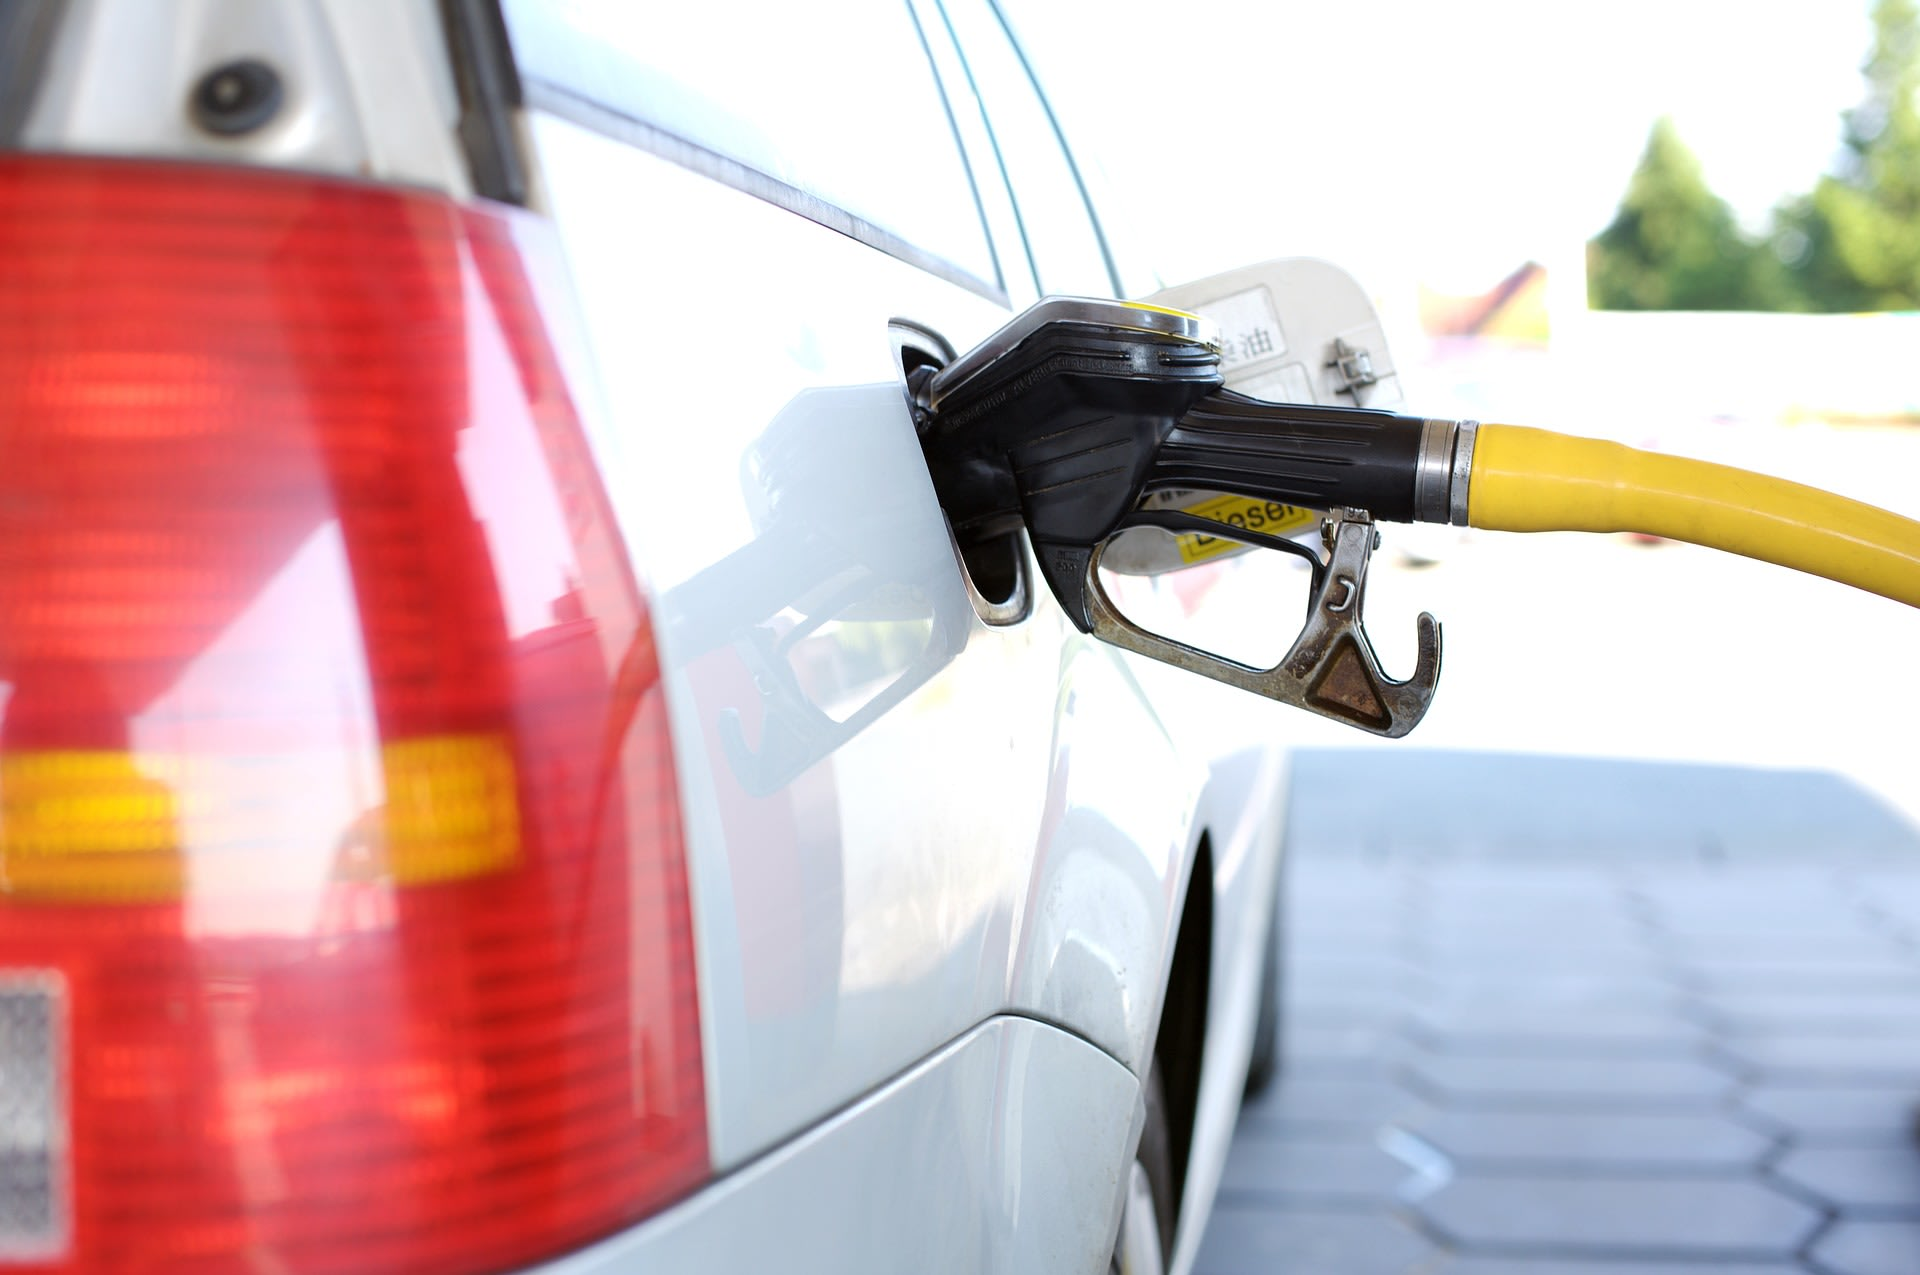 Petrol prices are up – but your consumption doesn't have to be